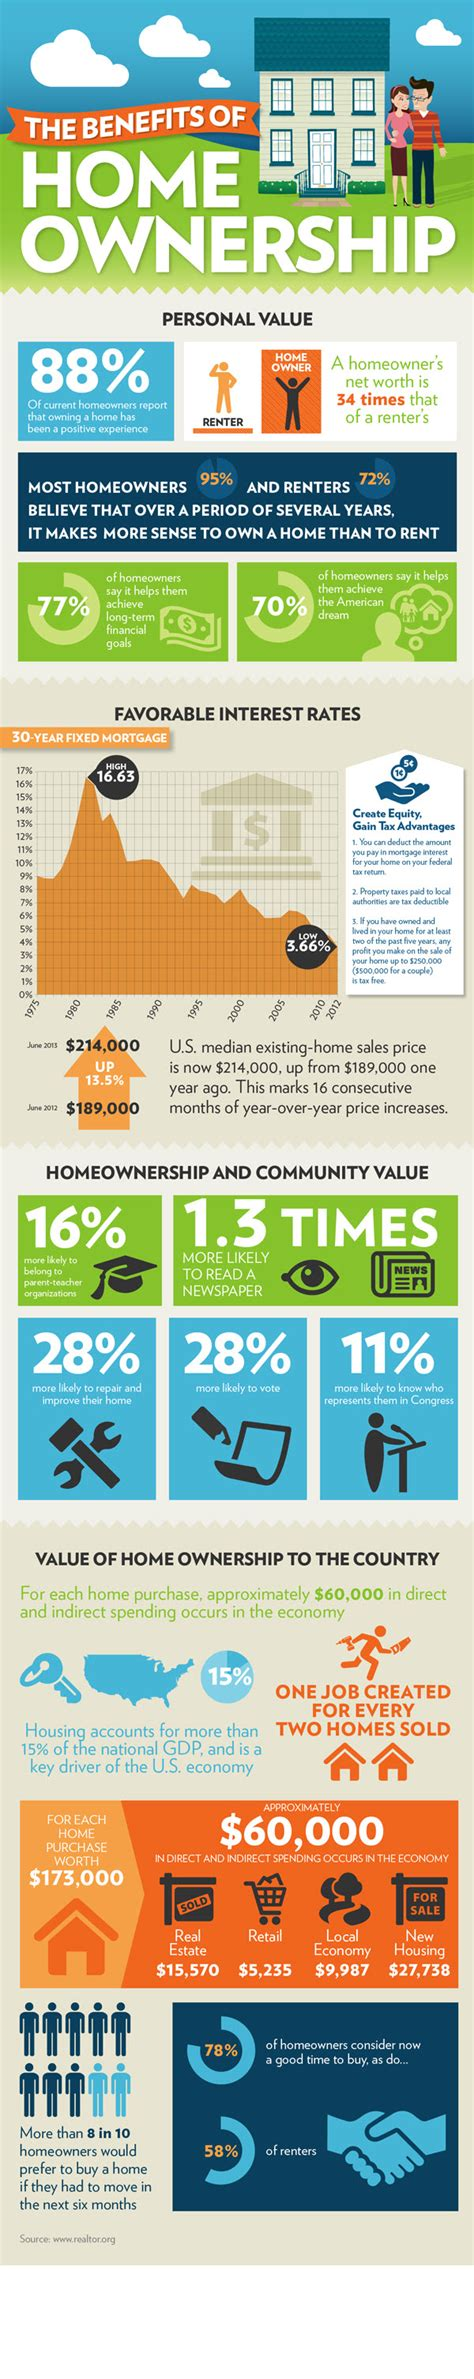 the benefits of home ownership infographic